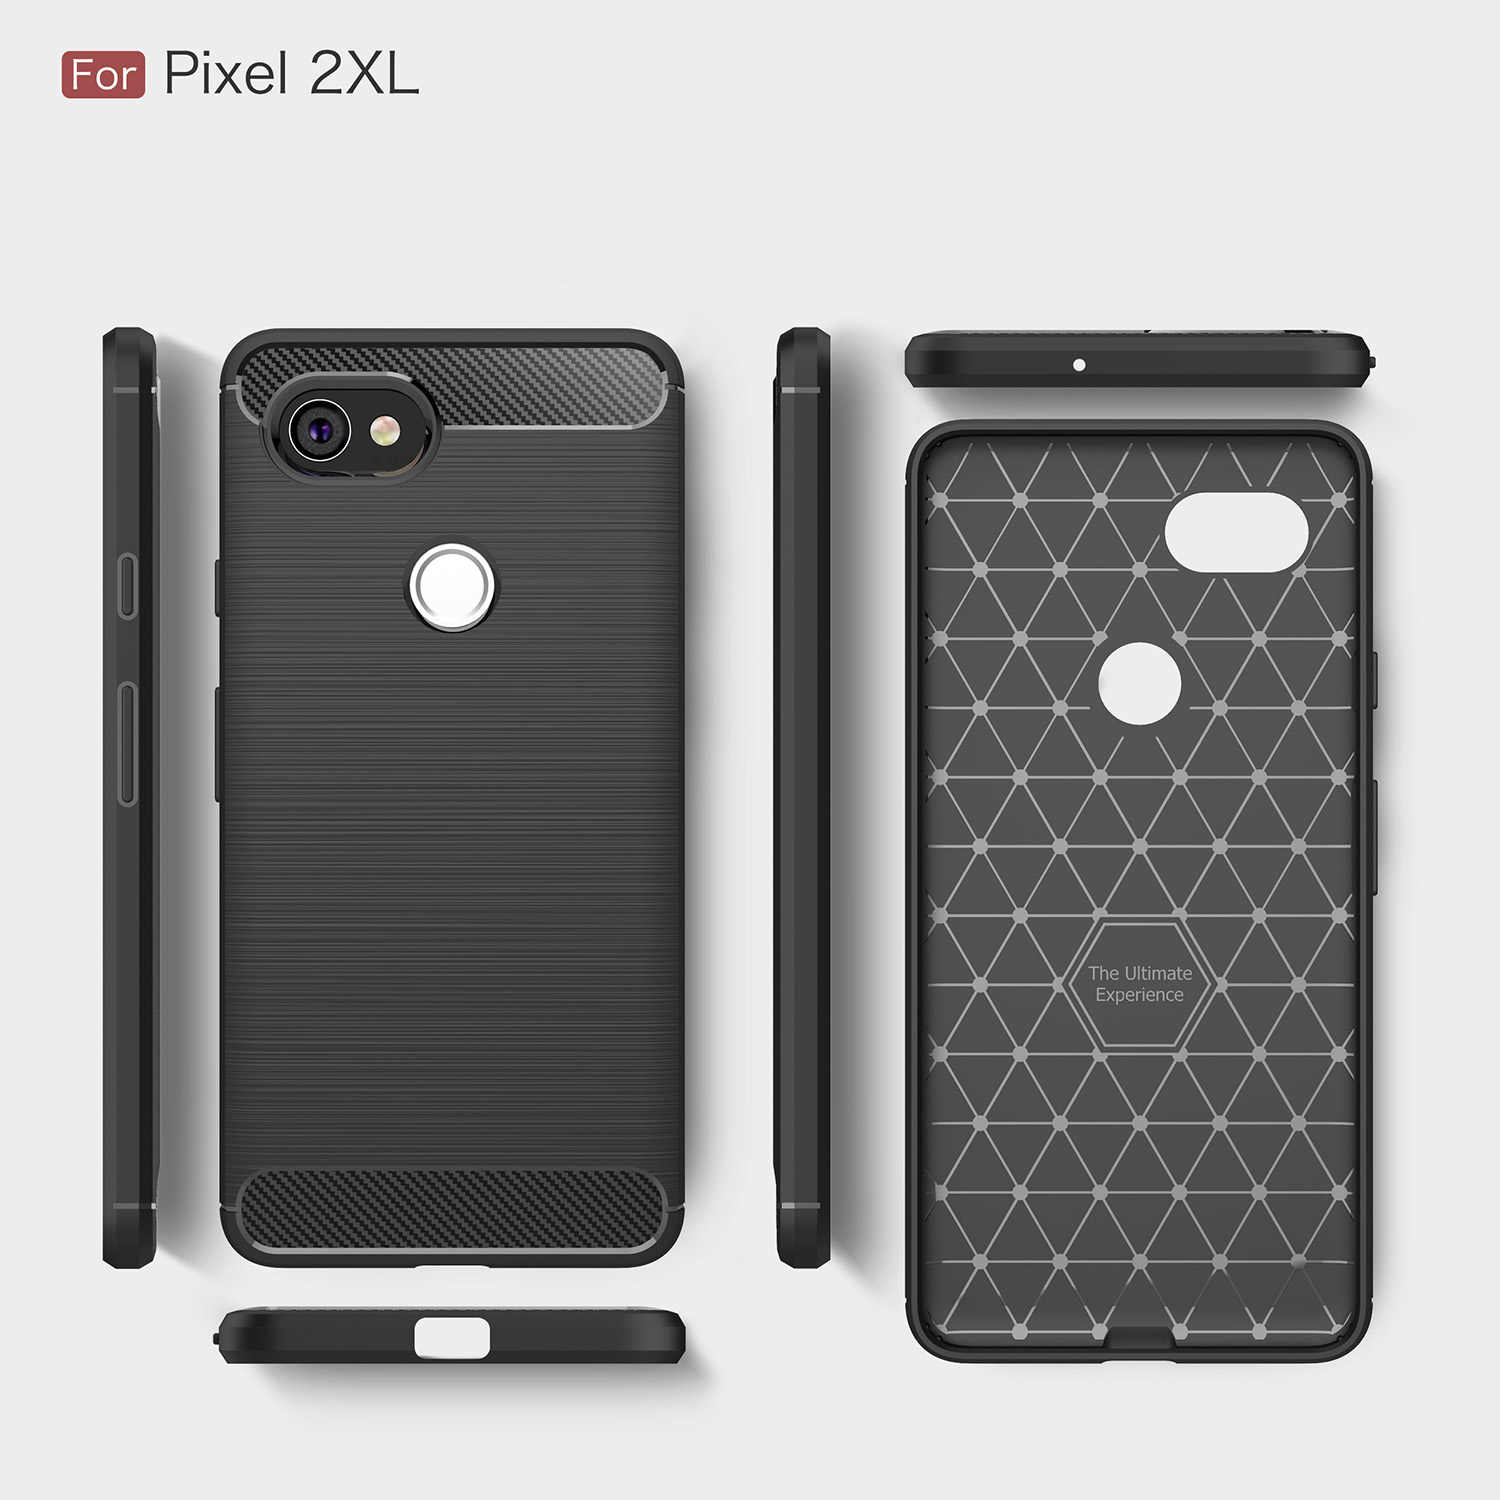 size 40 a7bc3 73399 Case for Google Pixel 2 / Pixel 2 XL TPU Silicone Case Ultra-thin Soft  Cover Matte Feel Phone Case Rugged Armor